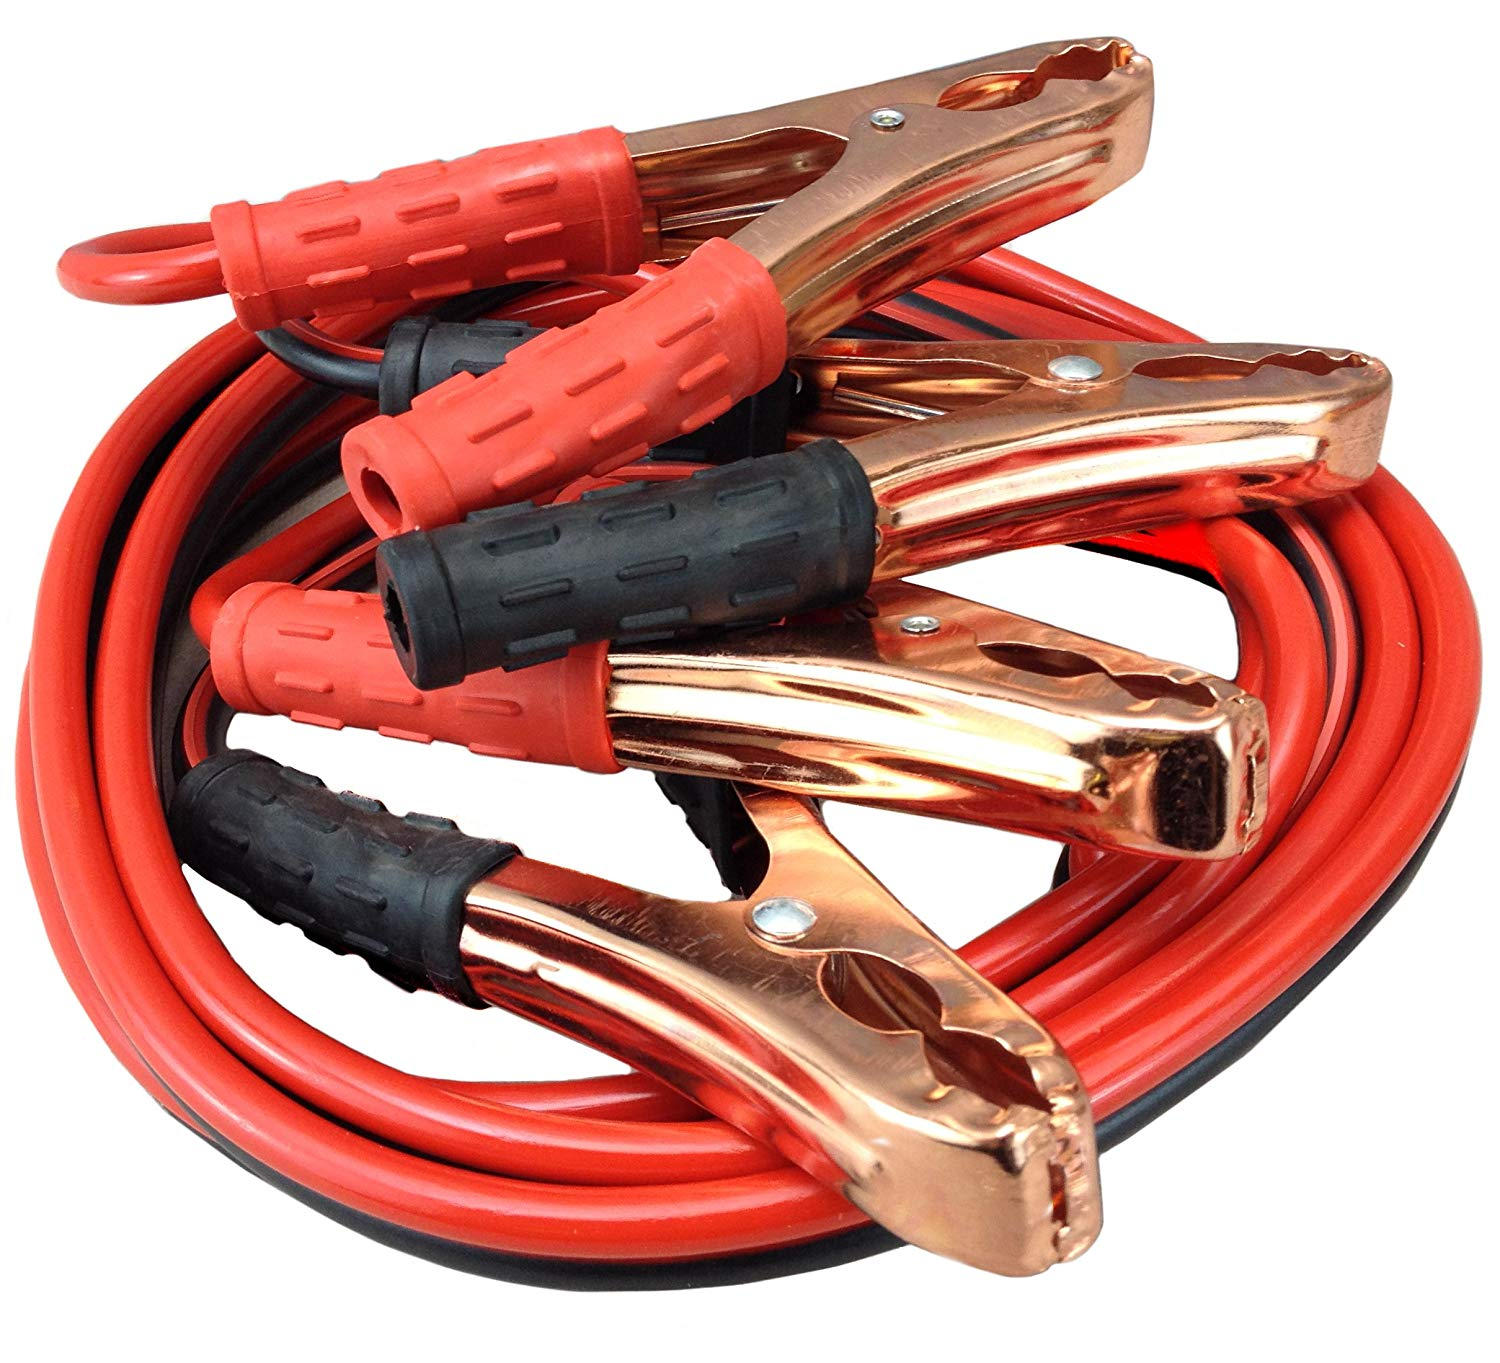 Car 6mm2, 200A Jumper Battery Cables 8 Ft Booster Jump Start